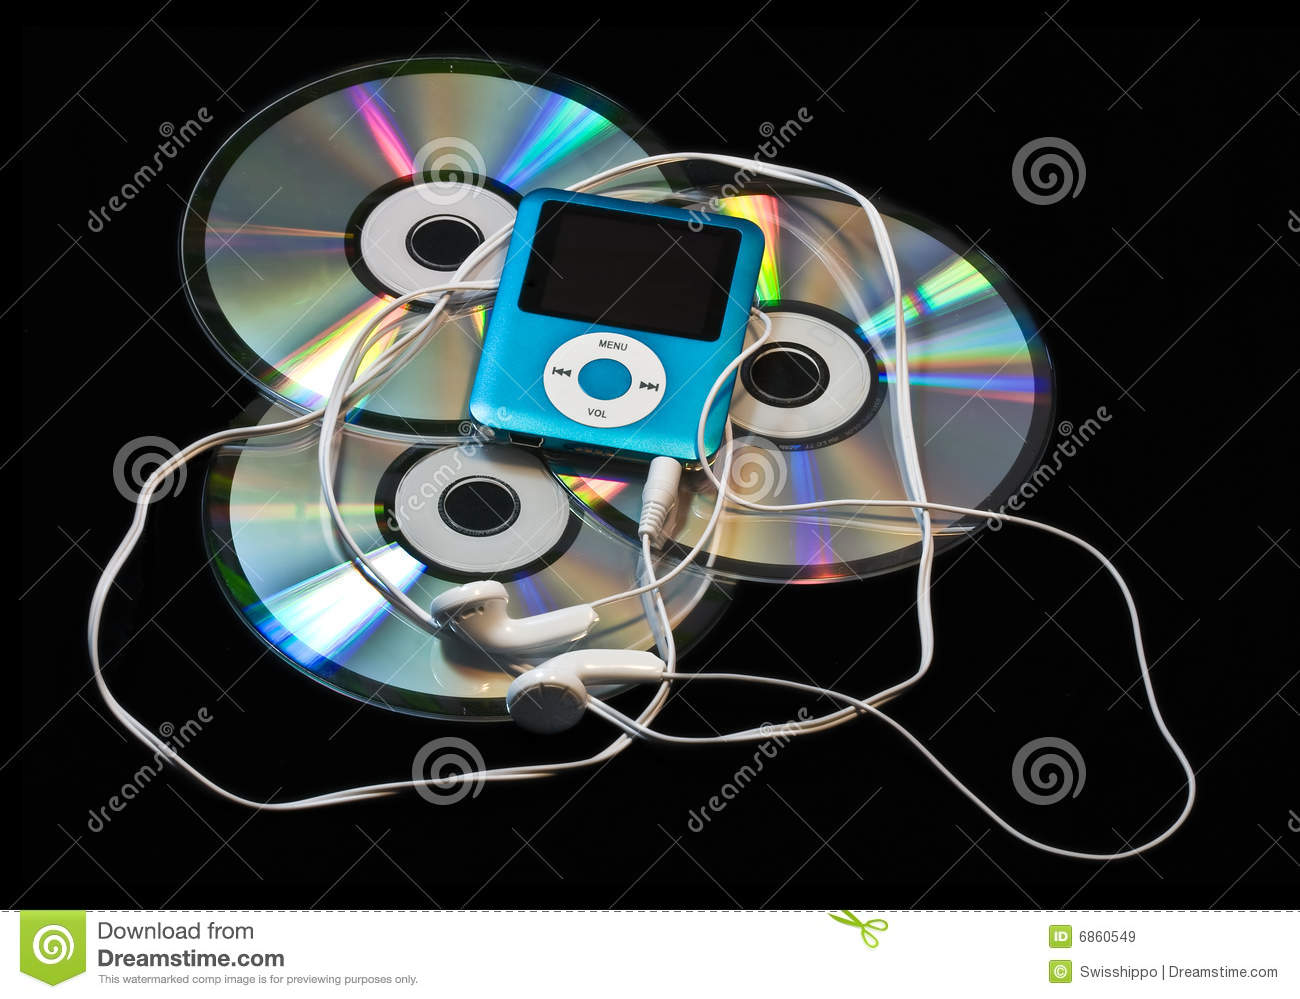 MP3 player over CDs stock image  Image of personal